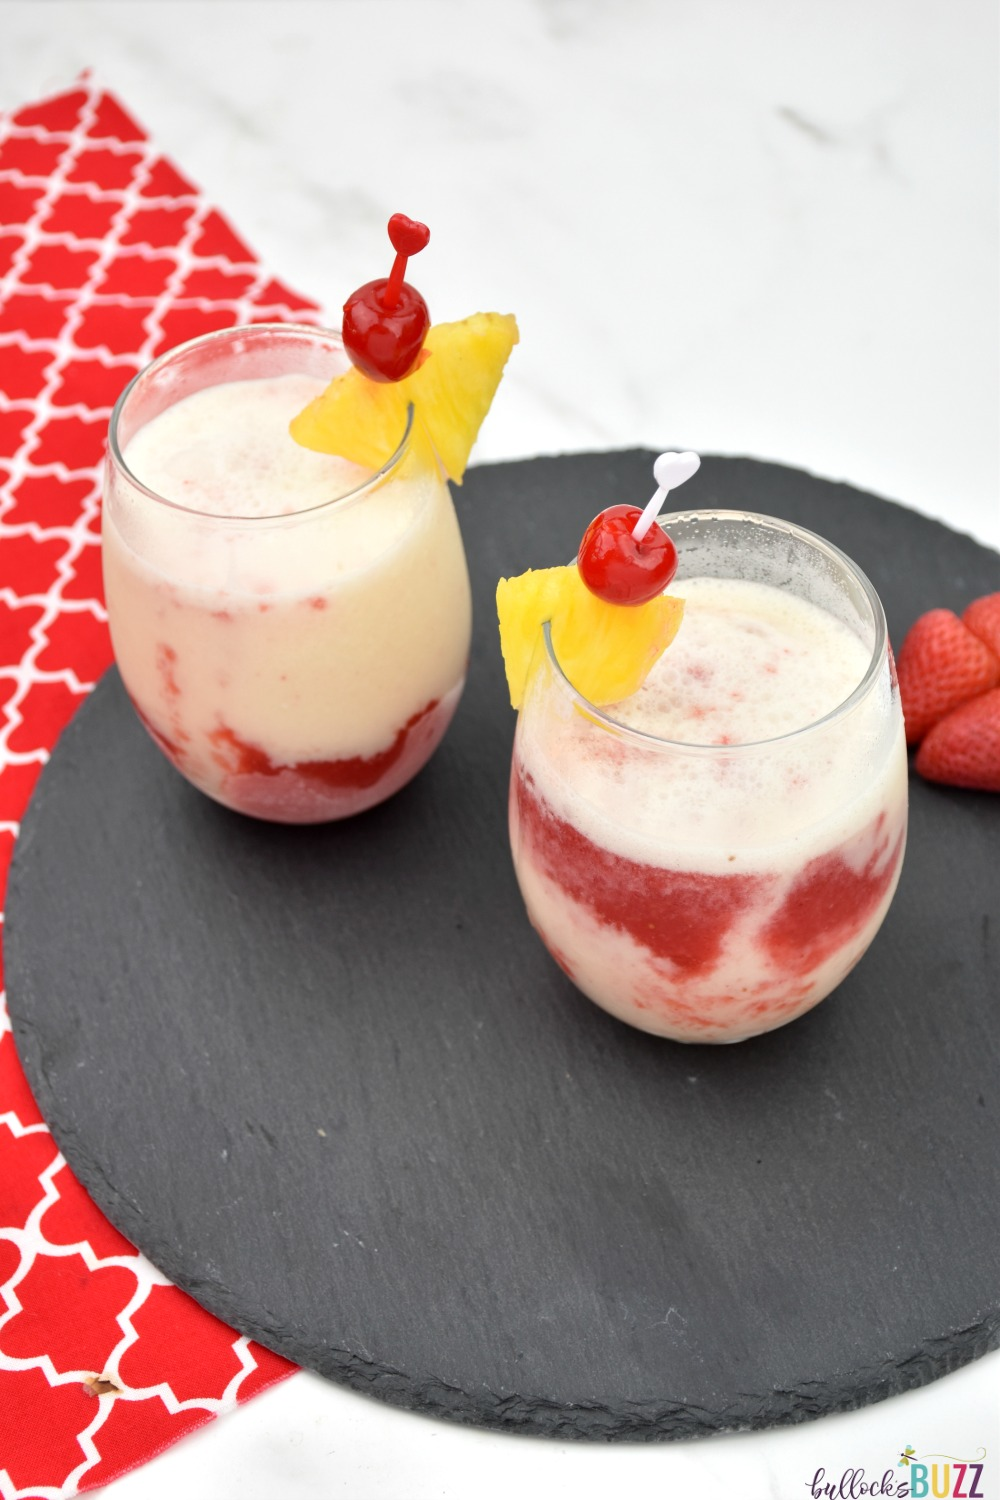 Garnished with a slice of pineapple and a cherry, this Lava Flow cocktail is the perfect summer drink! #cocktail #lavaflowcocktail